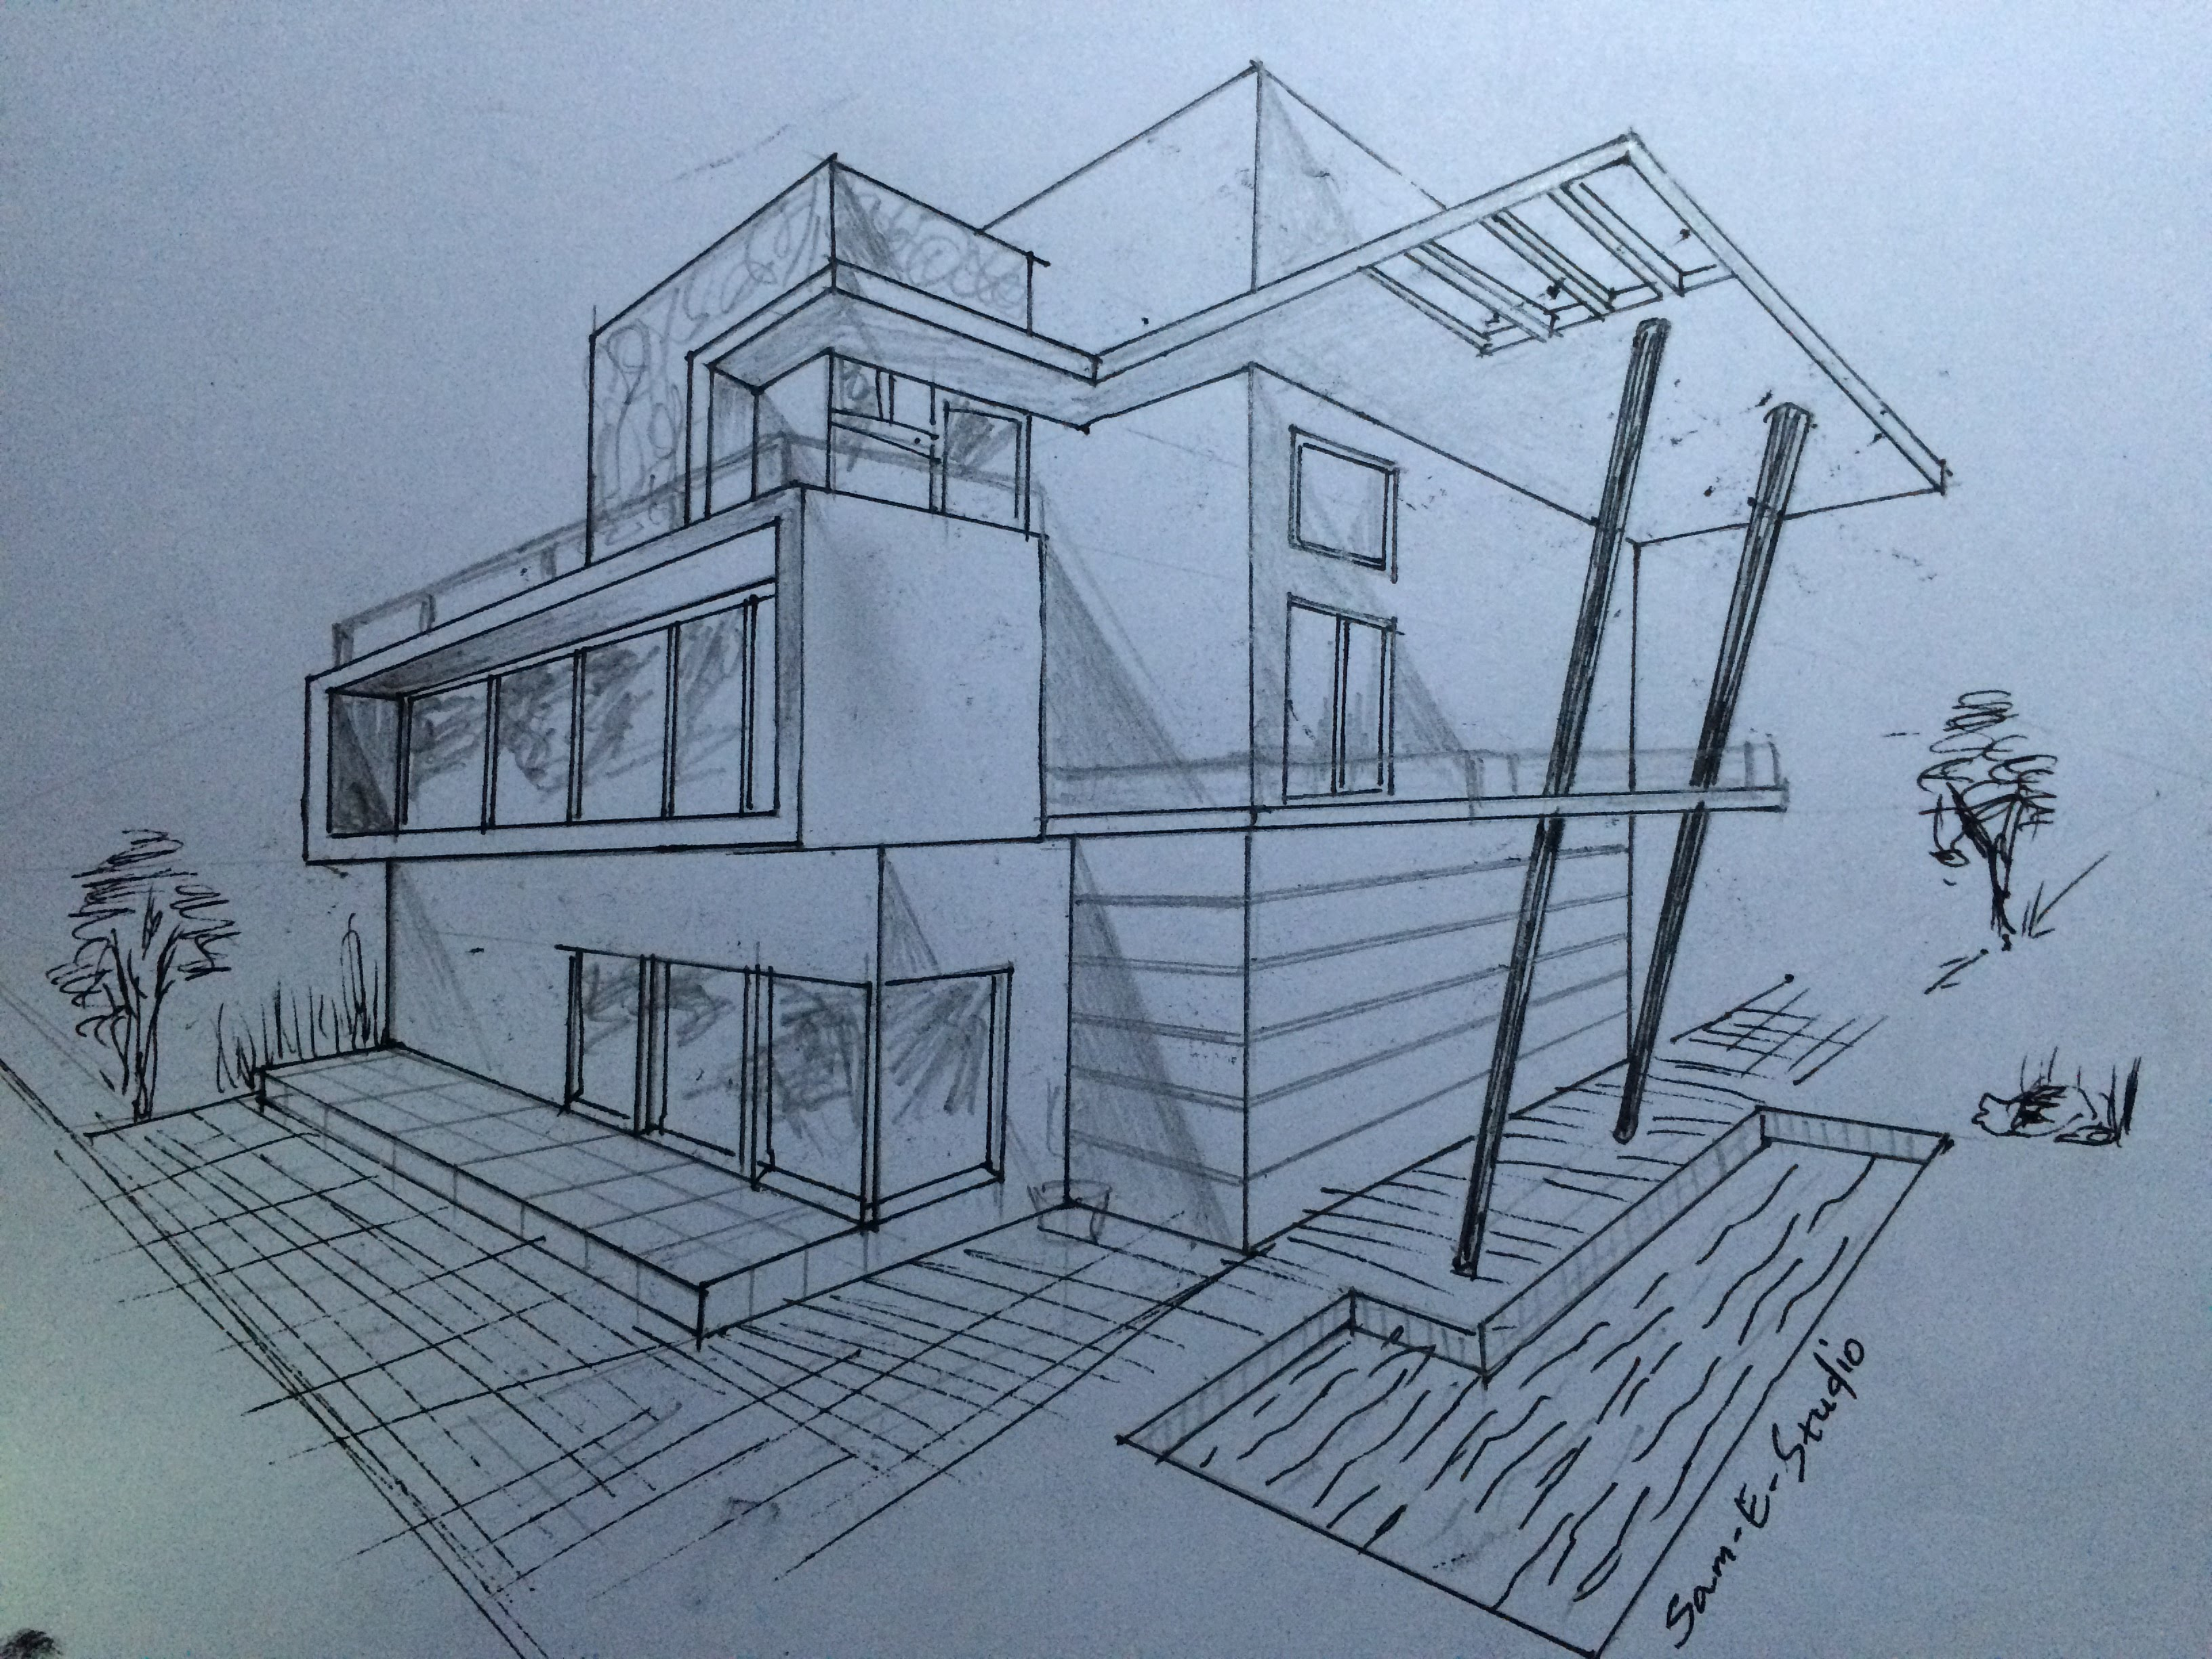 architecture design house drawing. 3264x2448 ARCHITECTURE MODERN HOUSE DESIGN (2 POINT PERSPECTIVE VIEW) Architecture Design House Drawing R